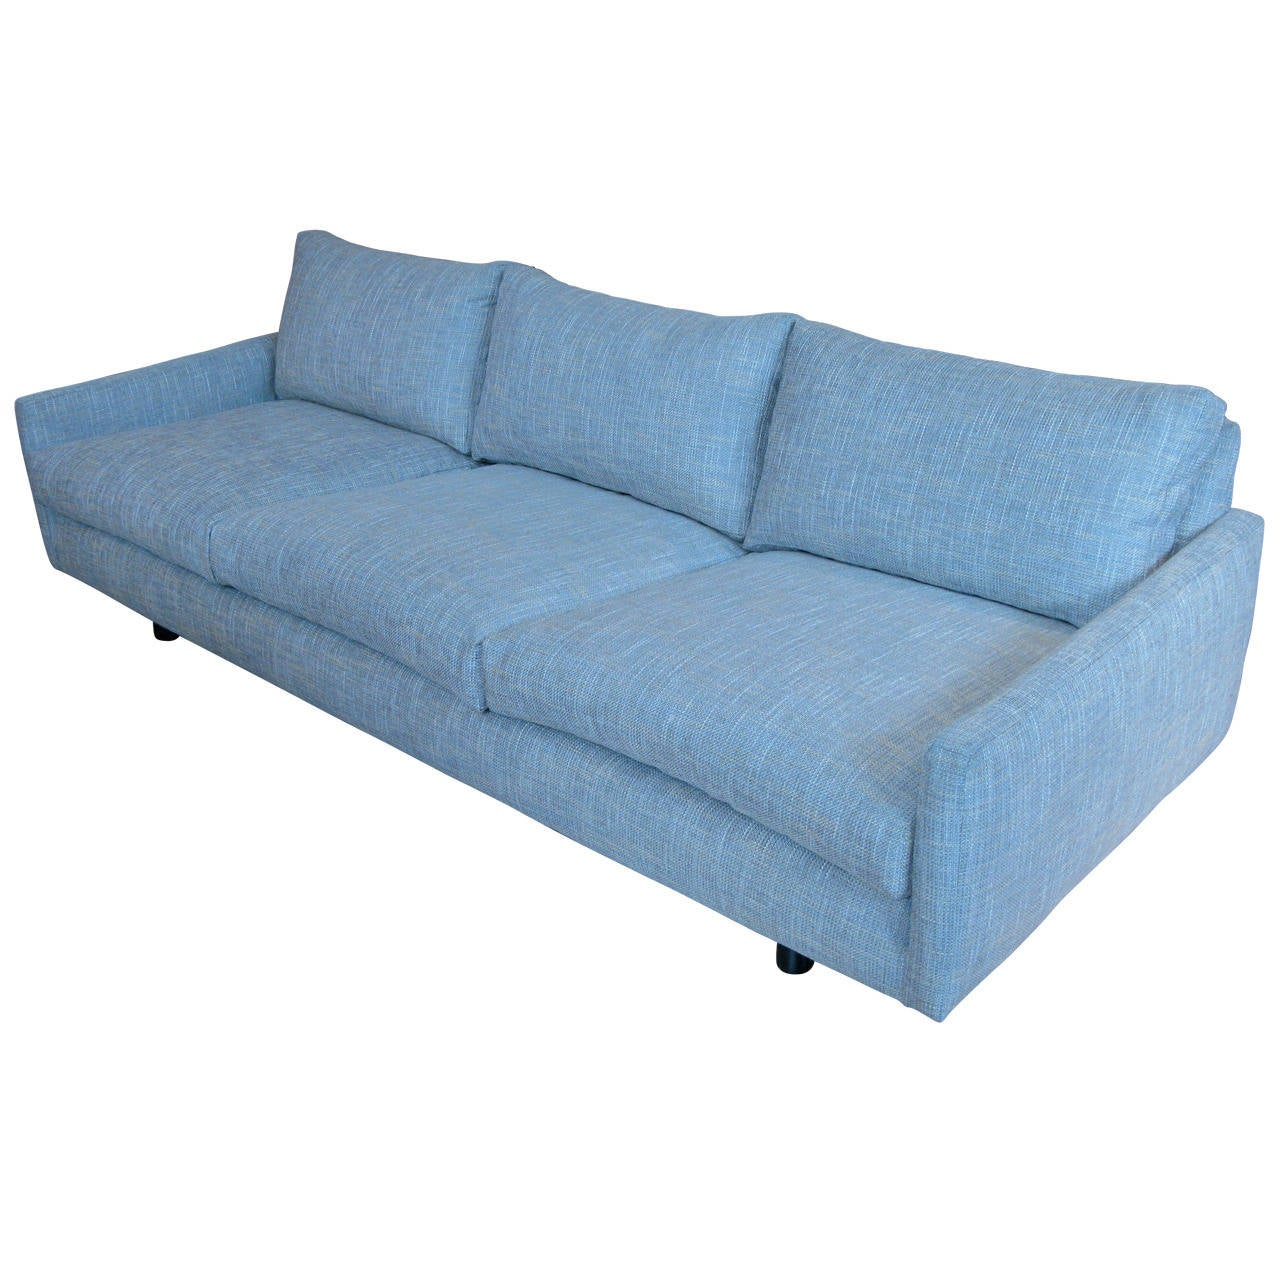 this classic 1970s vintage modern sofa is no longer available